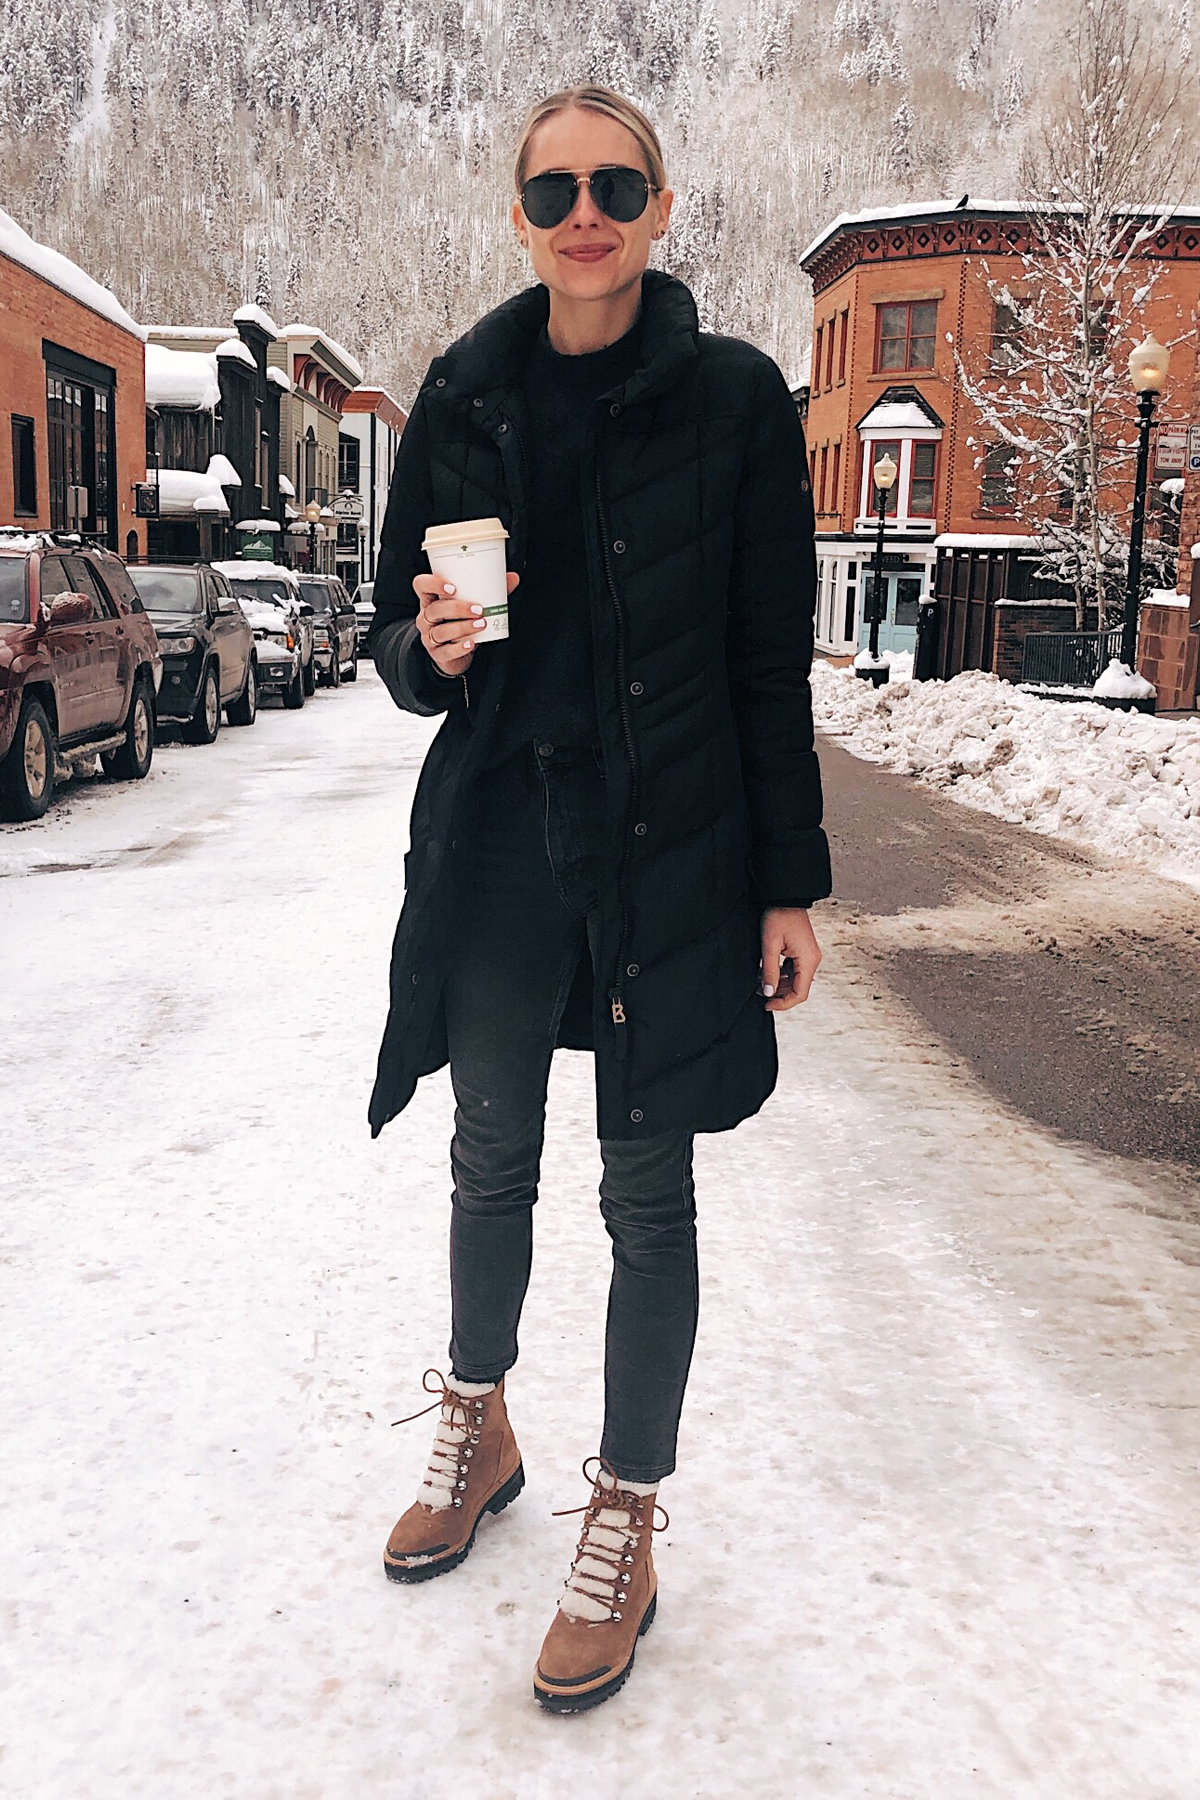 Fashion-Jackson-Wearing-Bogner-Black-Puffer-Jacket-Grey-Skinny-Jeans-Marc-Fisher-Winter-Boots